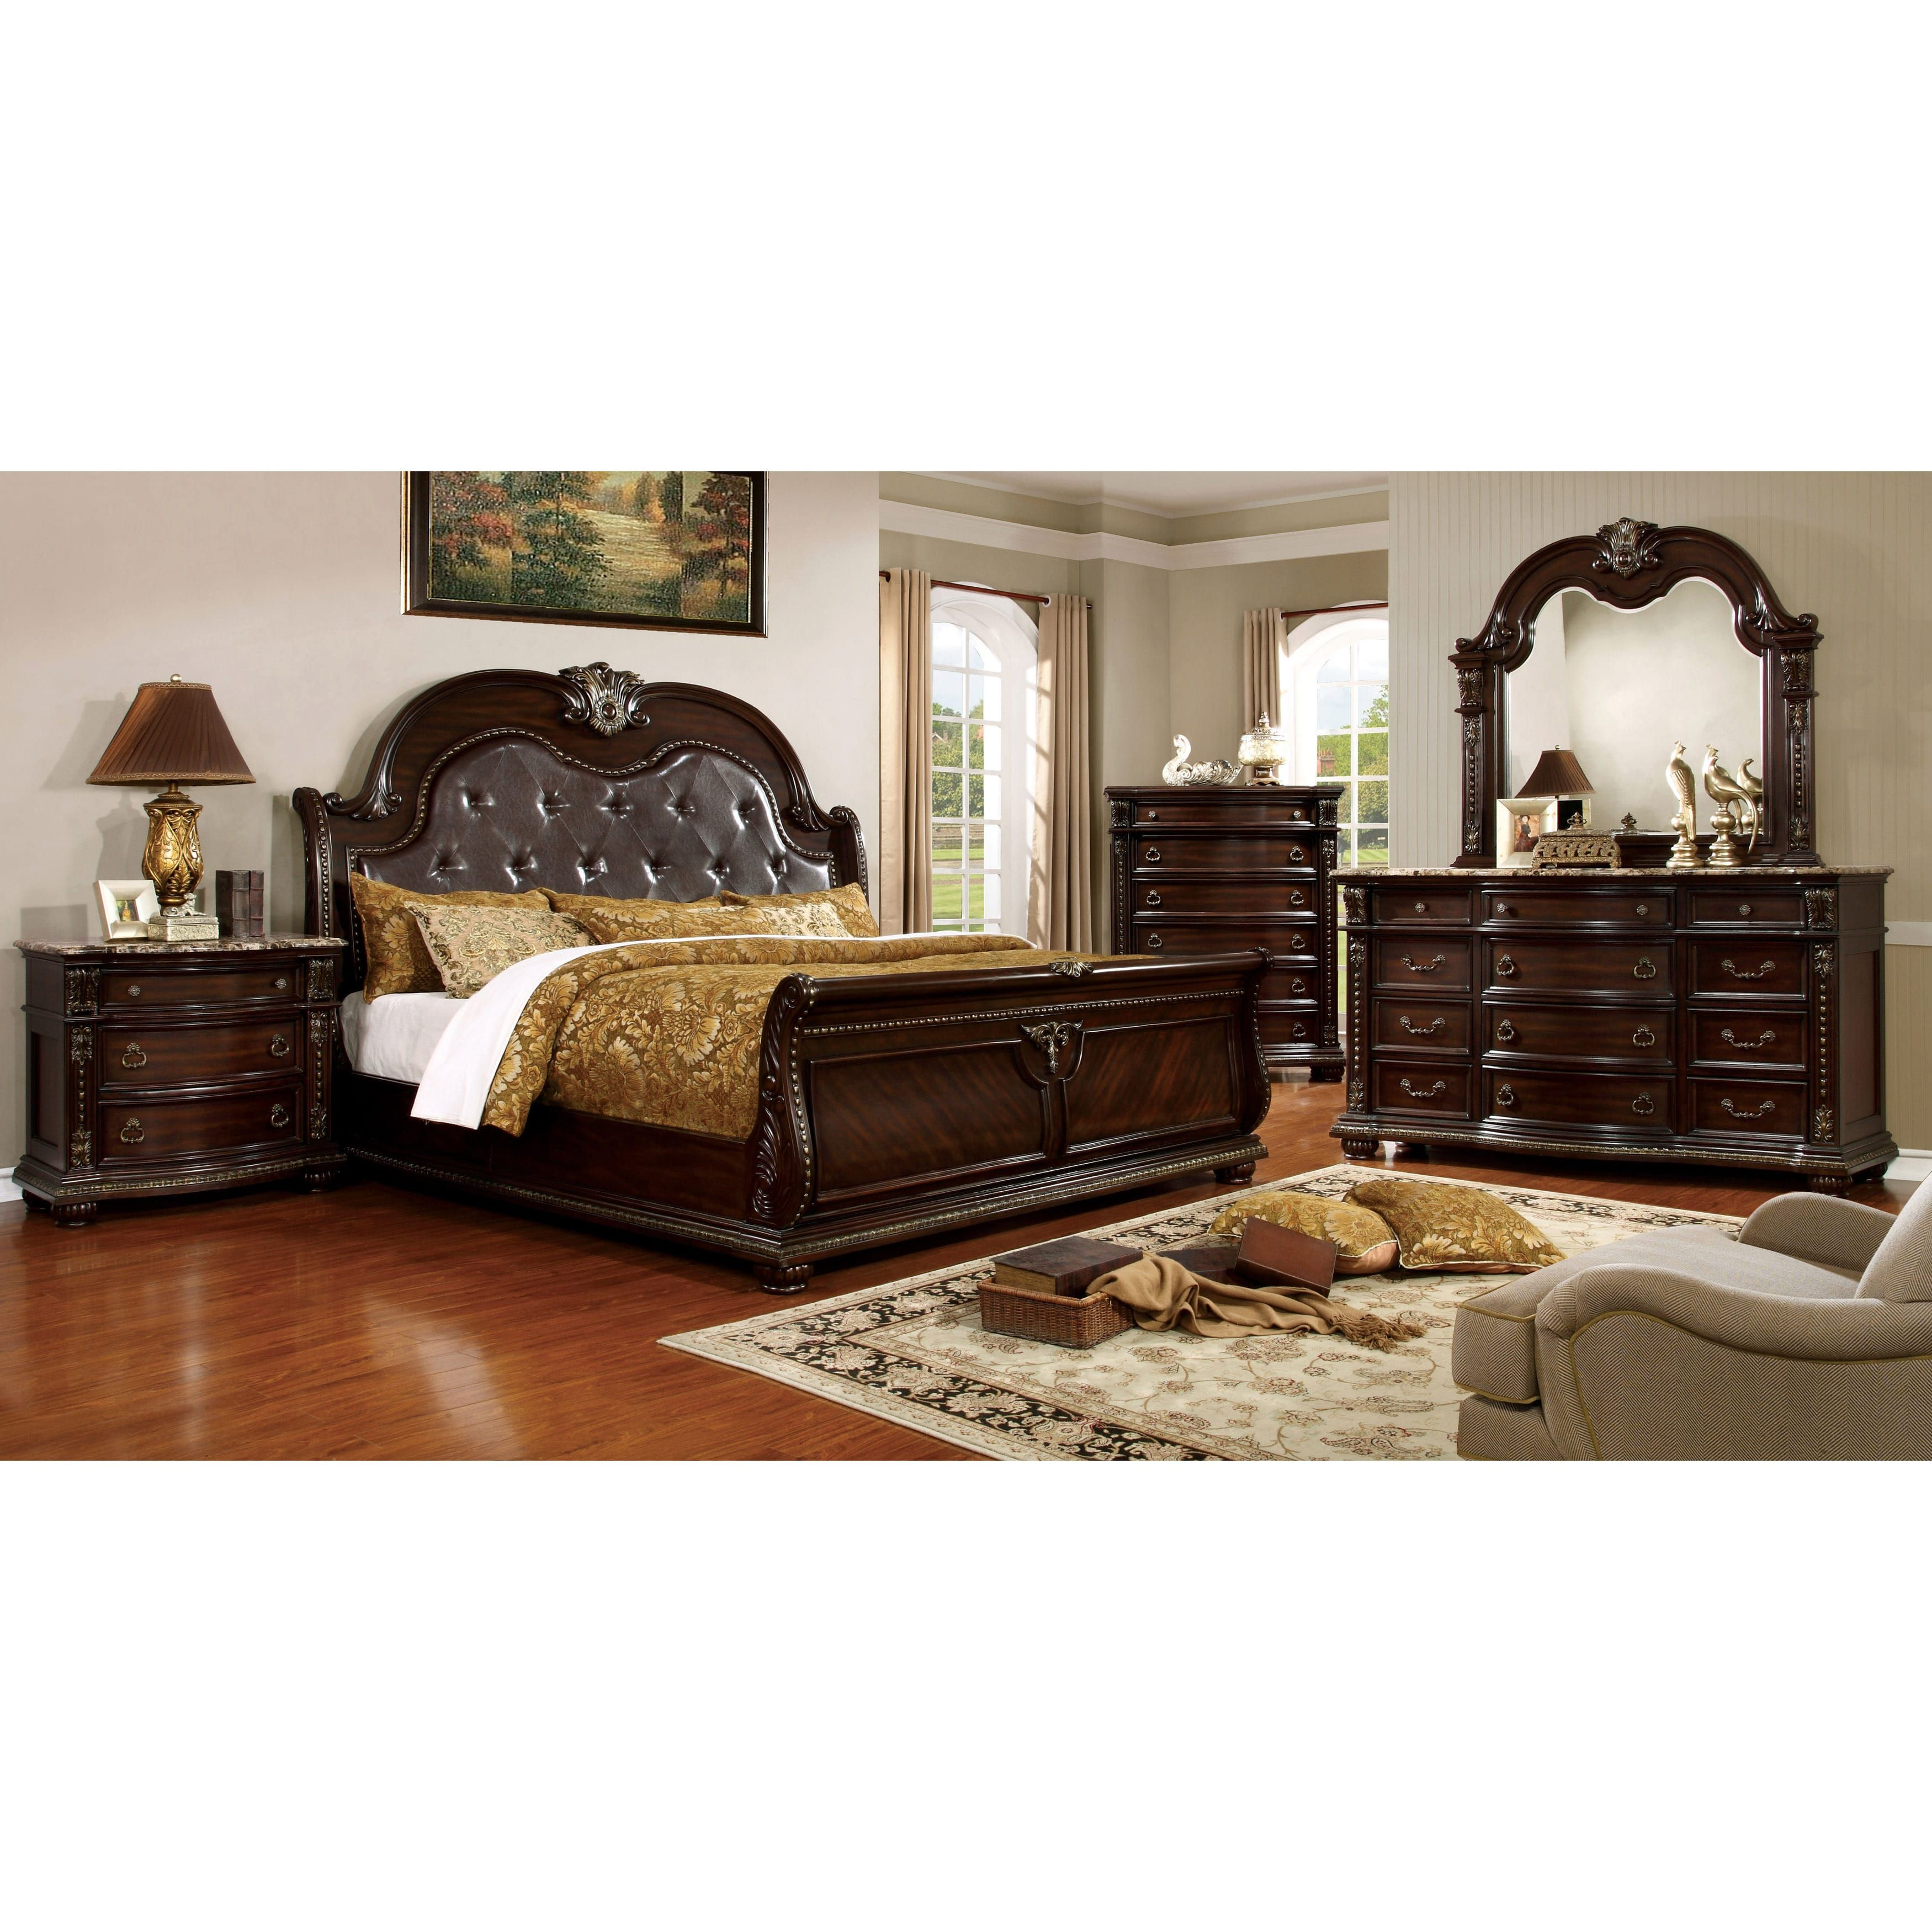 marble top bedroom furniture%0A Furniture of America Goodwell Traditional Brown Cherry Tufted Leatherette  Camelback Sleigh Bed   Overstock com